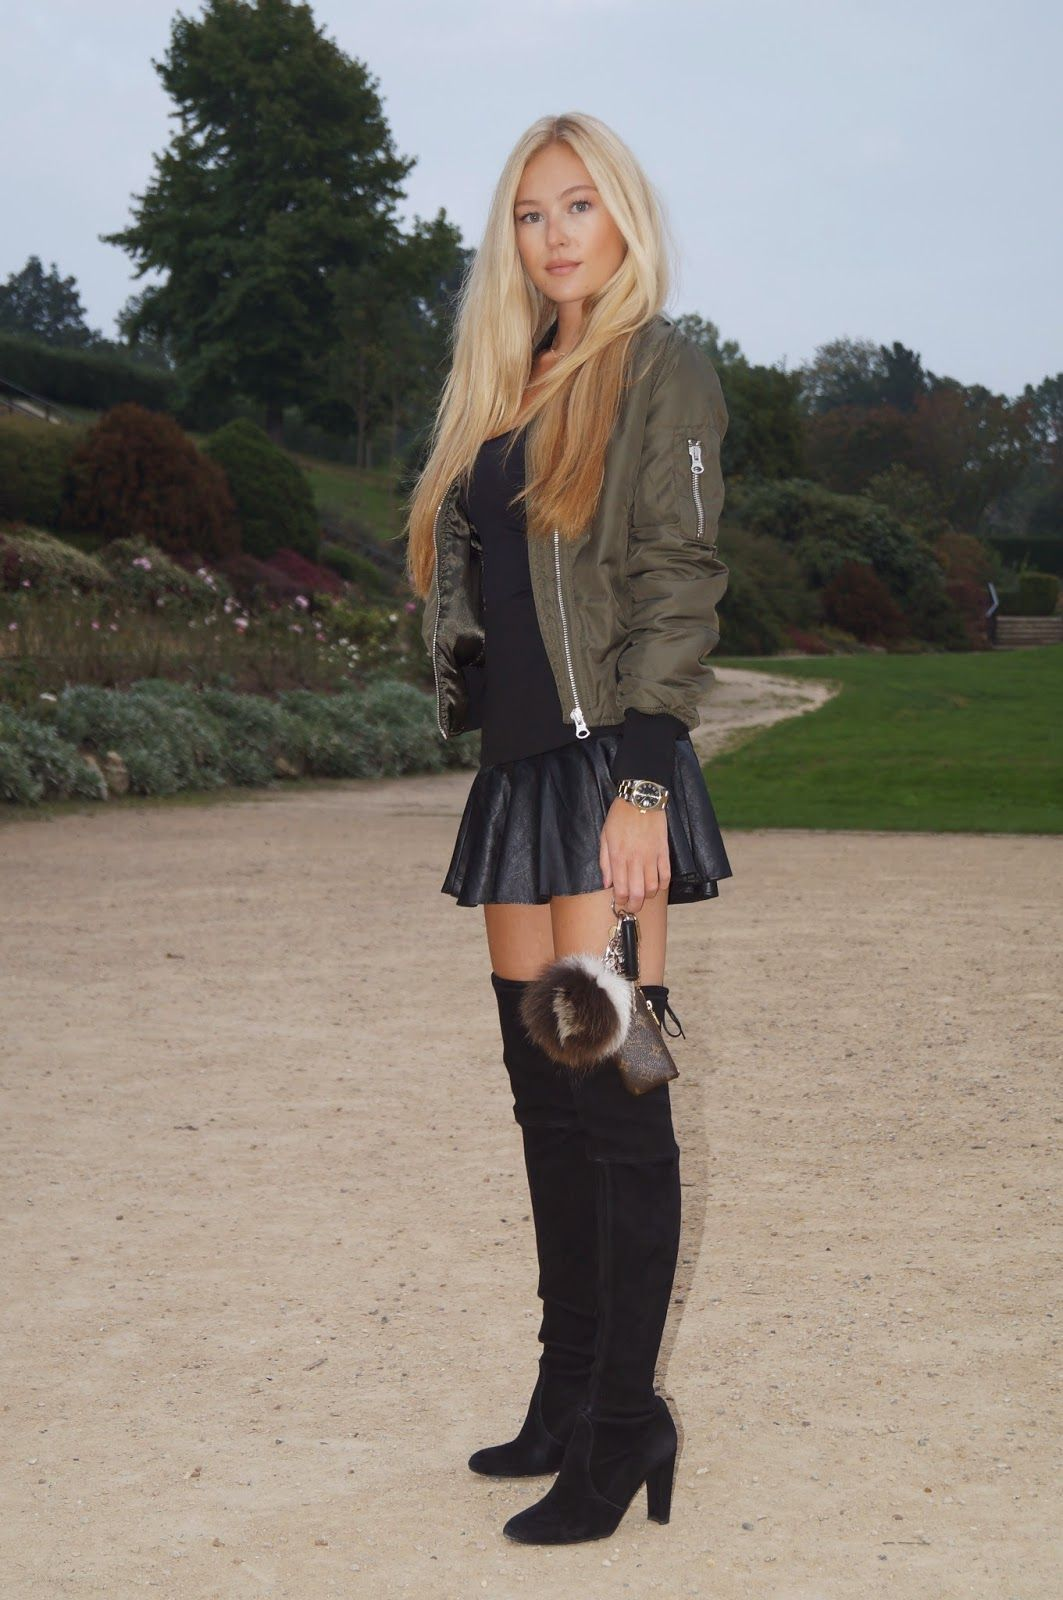 Sexy girl in leather skirt